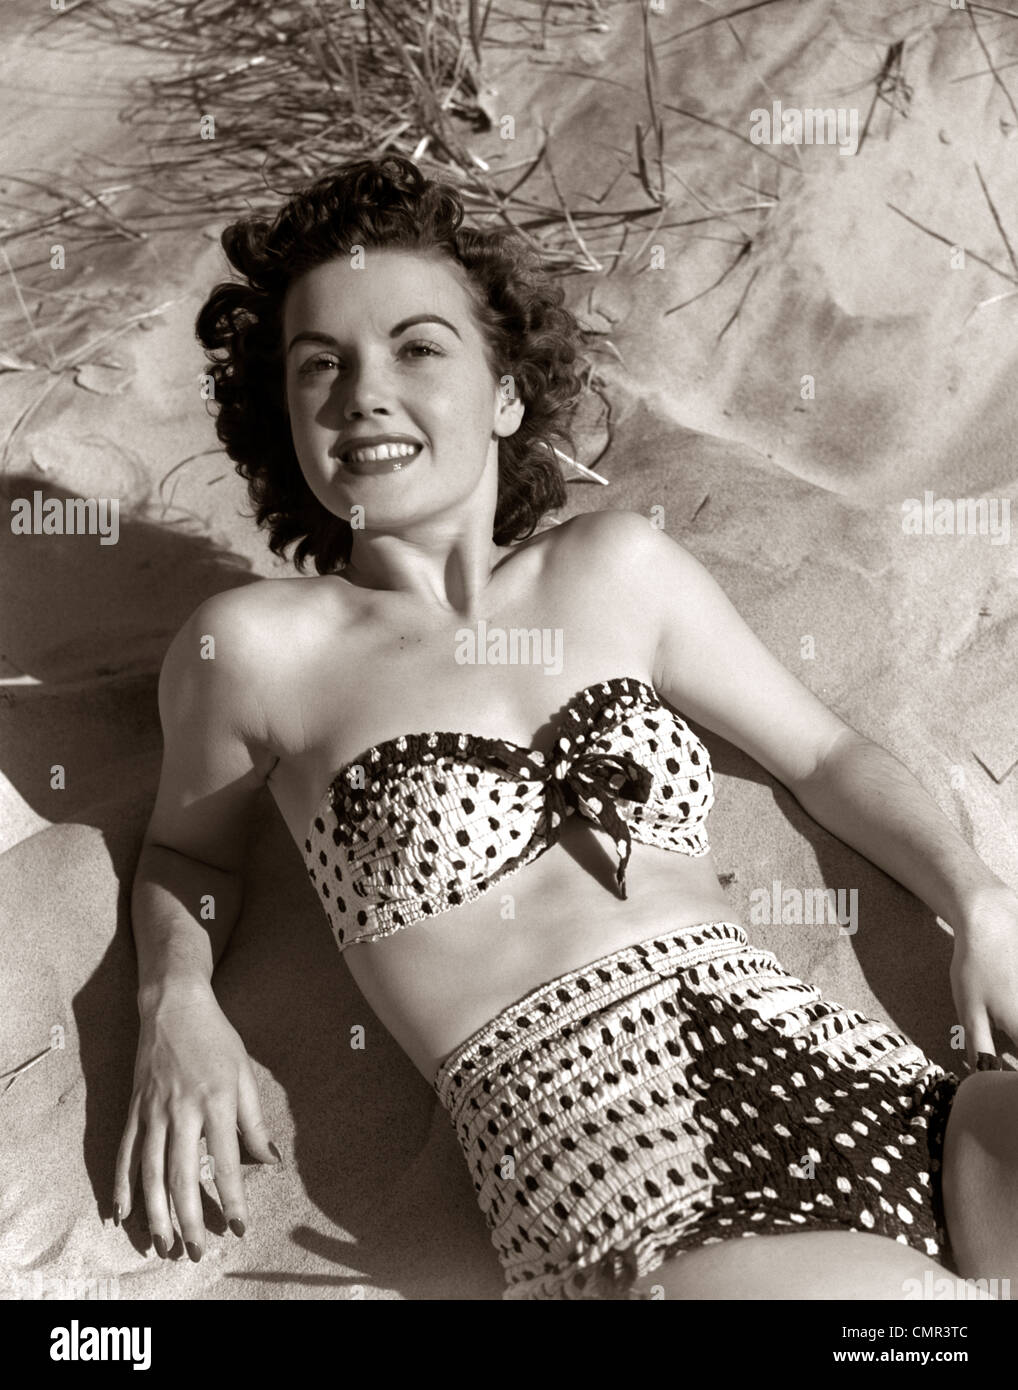 1950s SMILING BRUNETTE WOMAN WEAR POLKA DOT TWO PIECE BATHING SUIT LAYING ON SAND - Stock Image